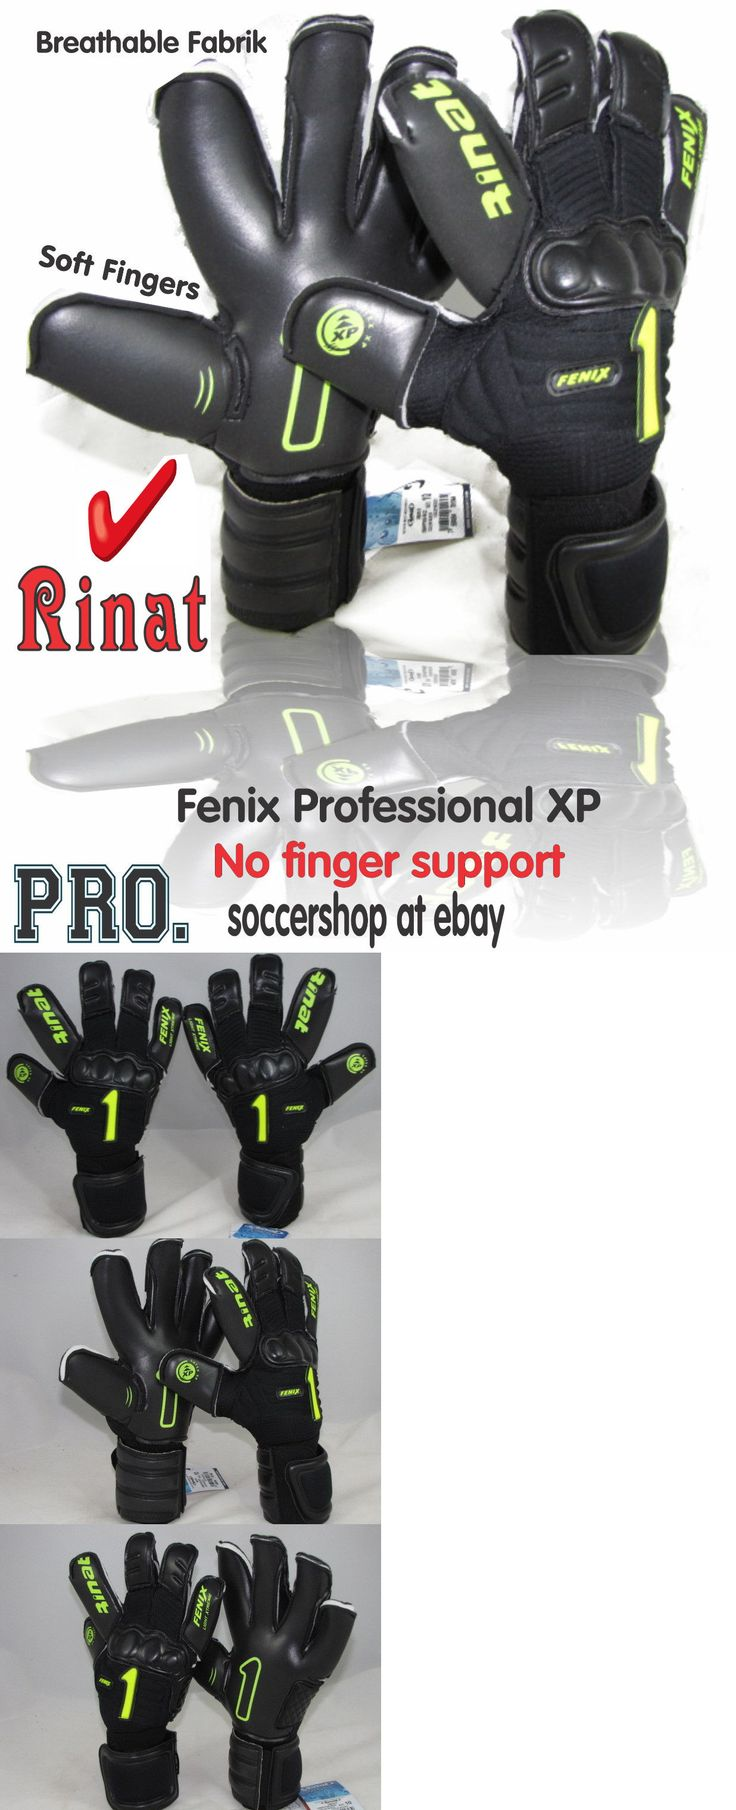 Gloves 57277: Rinat Goalkeeper Gloves Fenix Professional Xp (Blk Neon Size 10) No Finger Save -> BUY IT NOW ONLY: $49.49 on eBay!